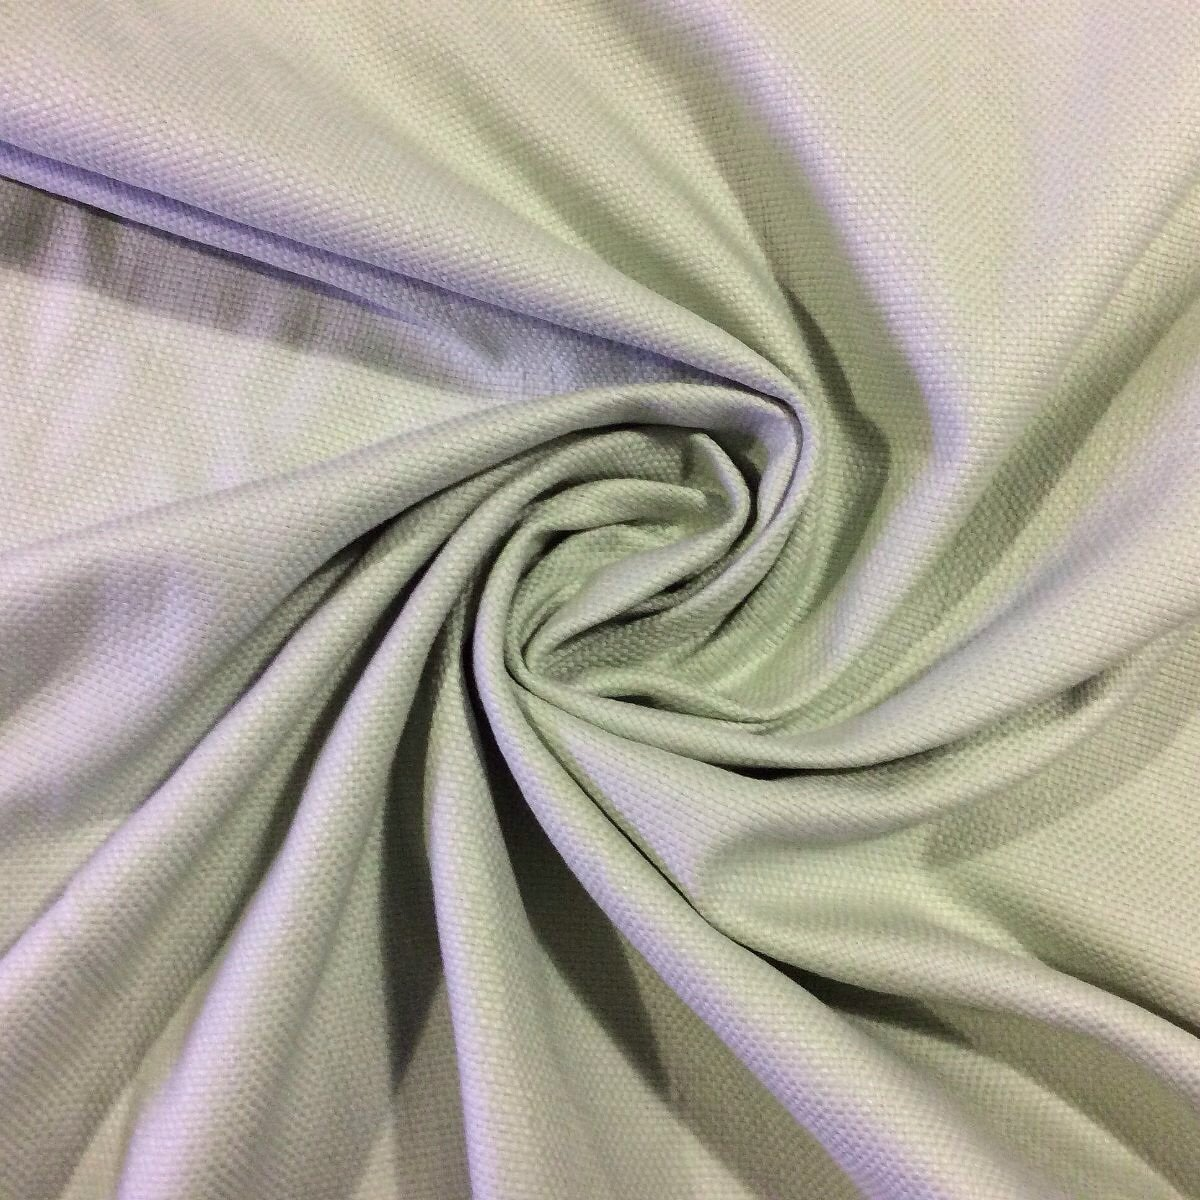 Celery Sage Green Heavy Textured Basketwoven Style Retro Look Solid Cotton Fabric Drapery Fabric Upholstery Fabric HD806